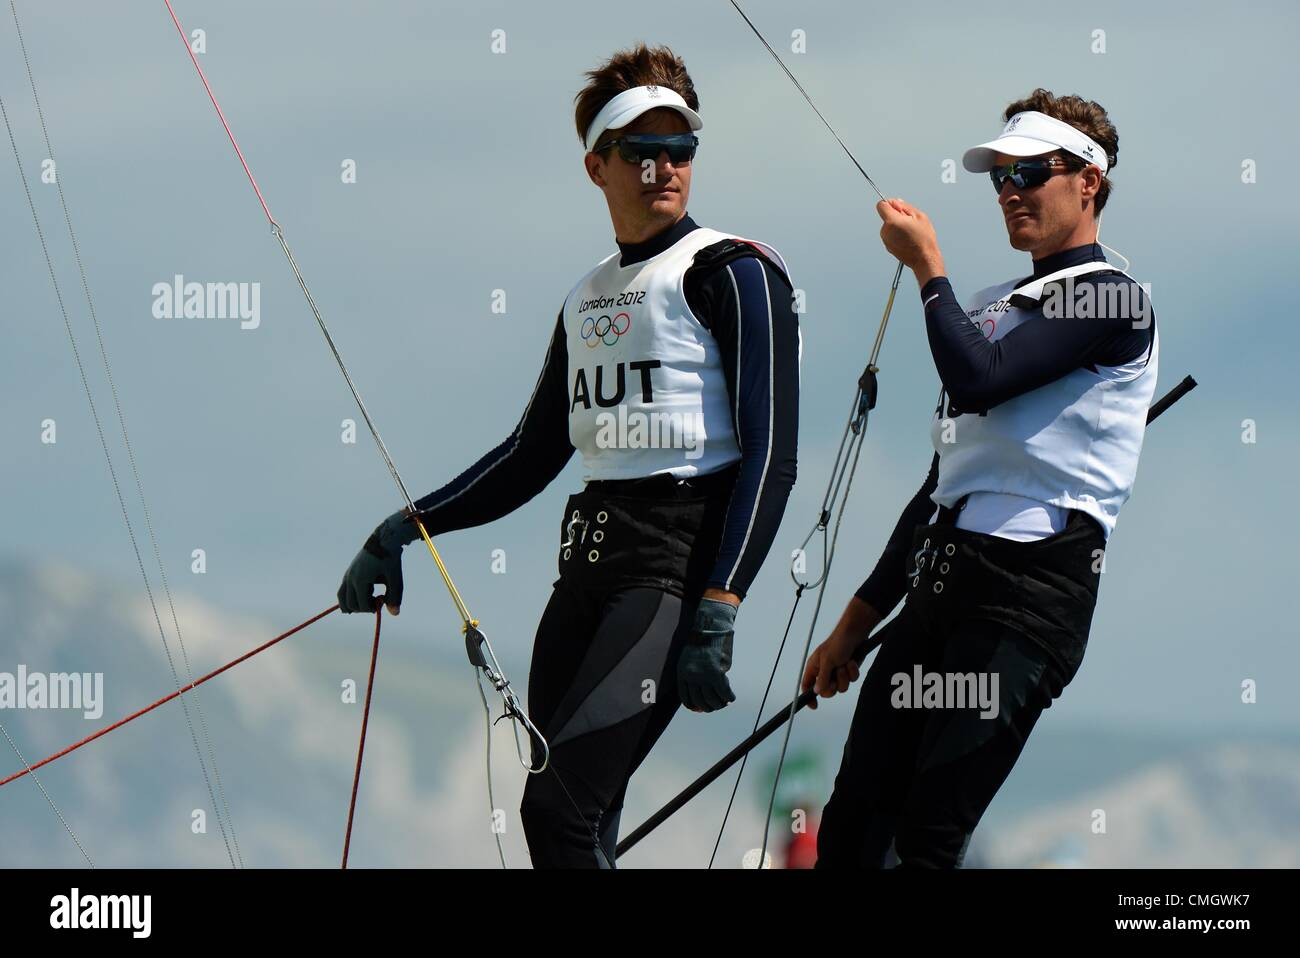 8th Aug 2012. Olympic Sailing, action during the London 2012 Olympic Games at the Weymouth & Portland Venue, - Stock Image